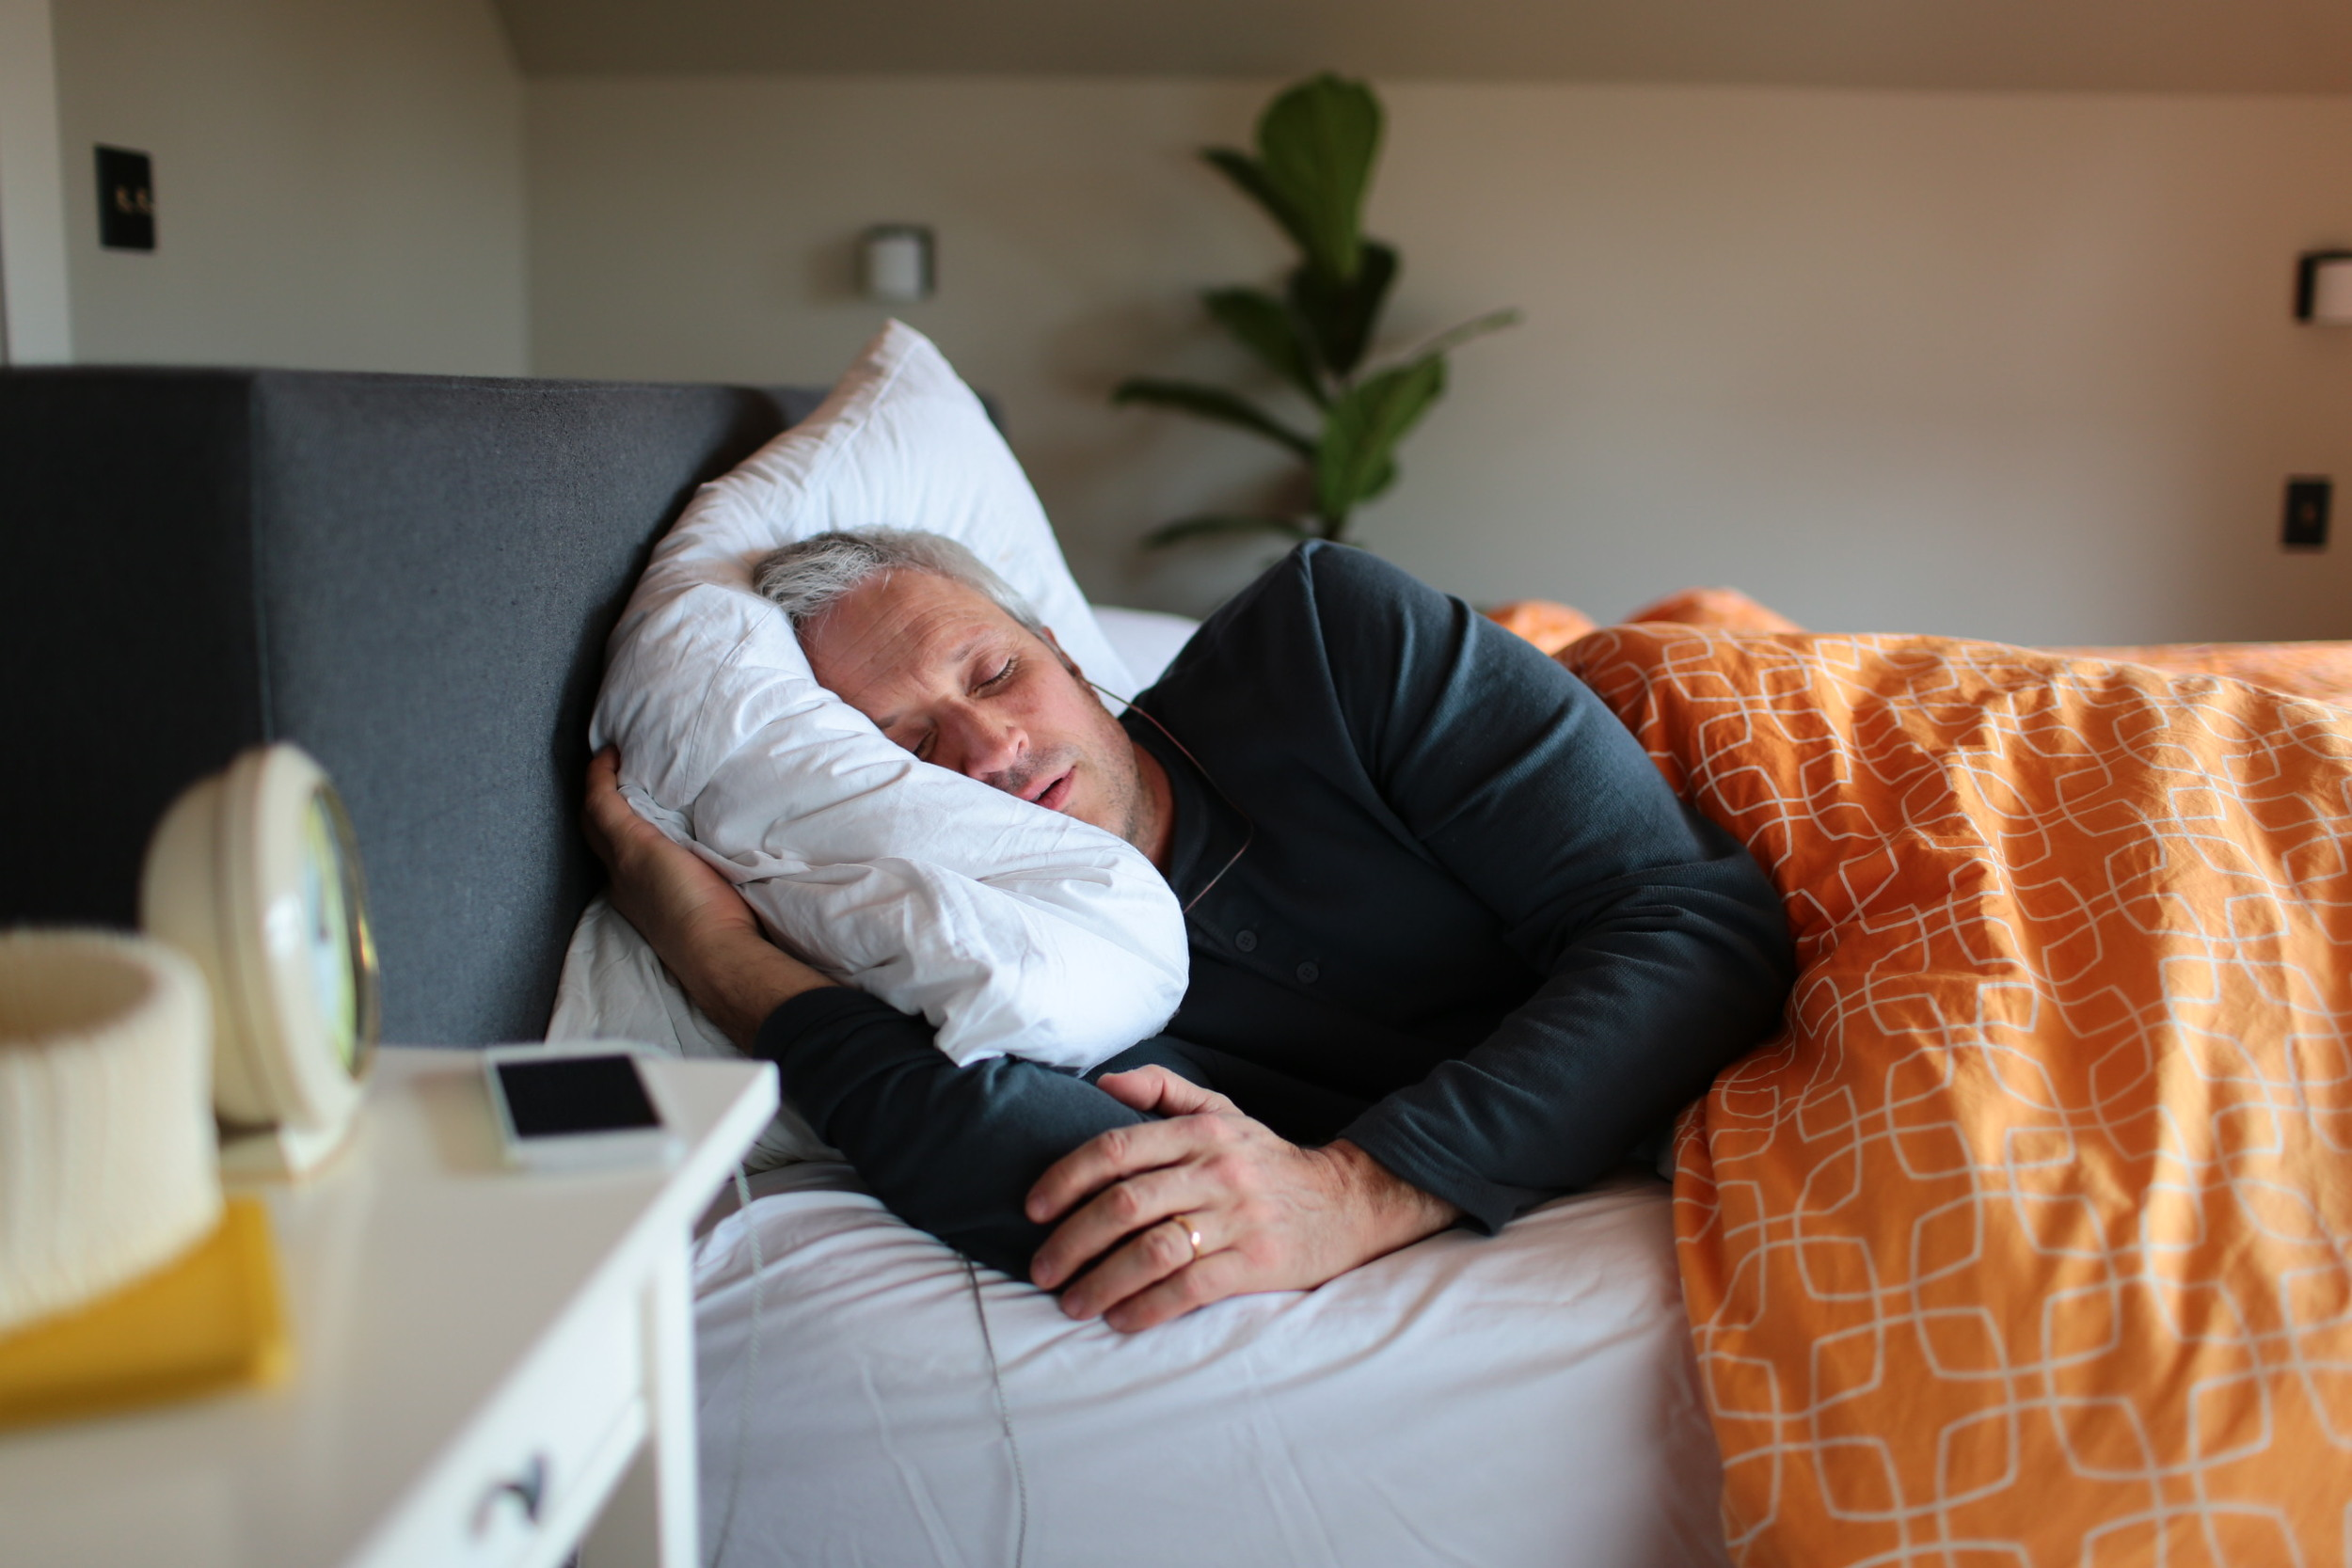 Tinnitus patient using sleep therapy to treat ear ringing